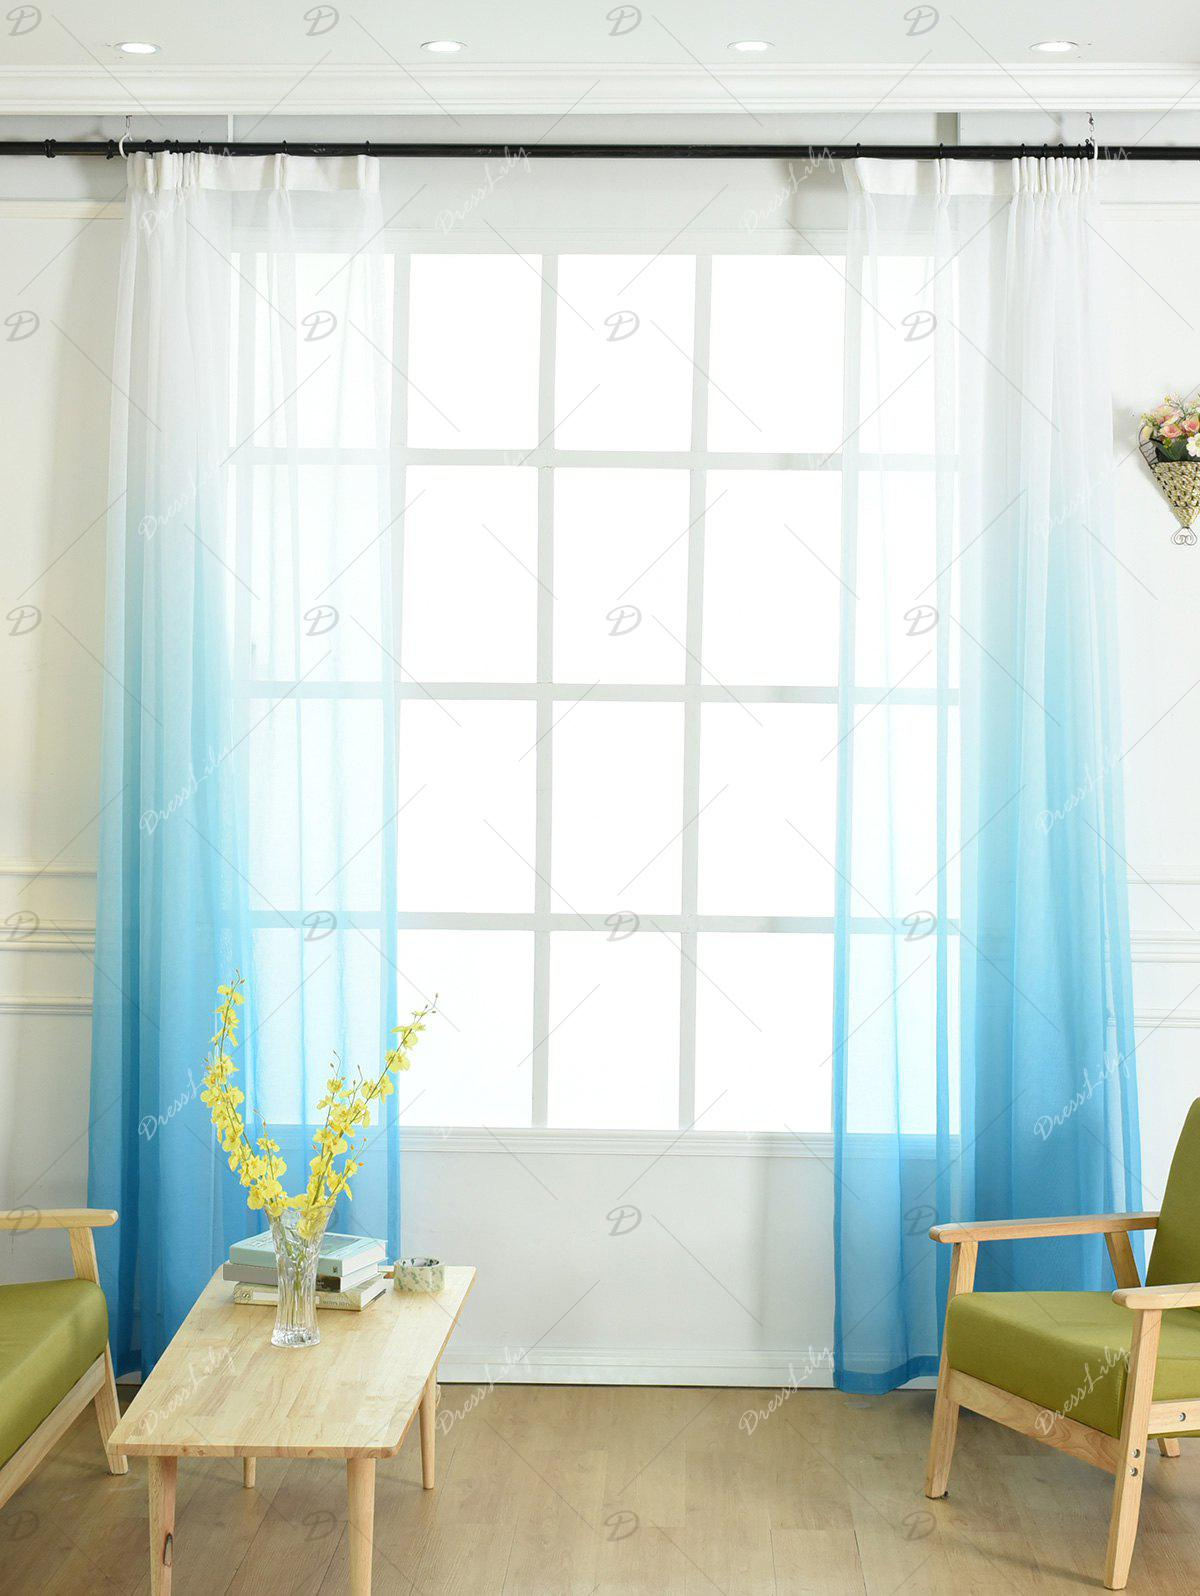 Ombre Sheer Tulle Curtain Decorative Window Screen - BLUE W54*L84INCH